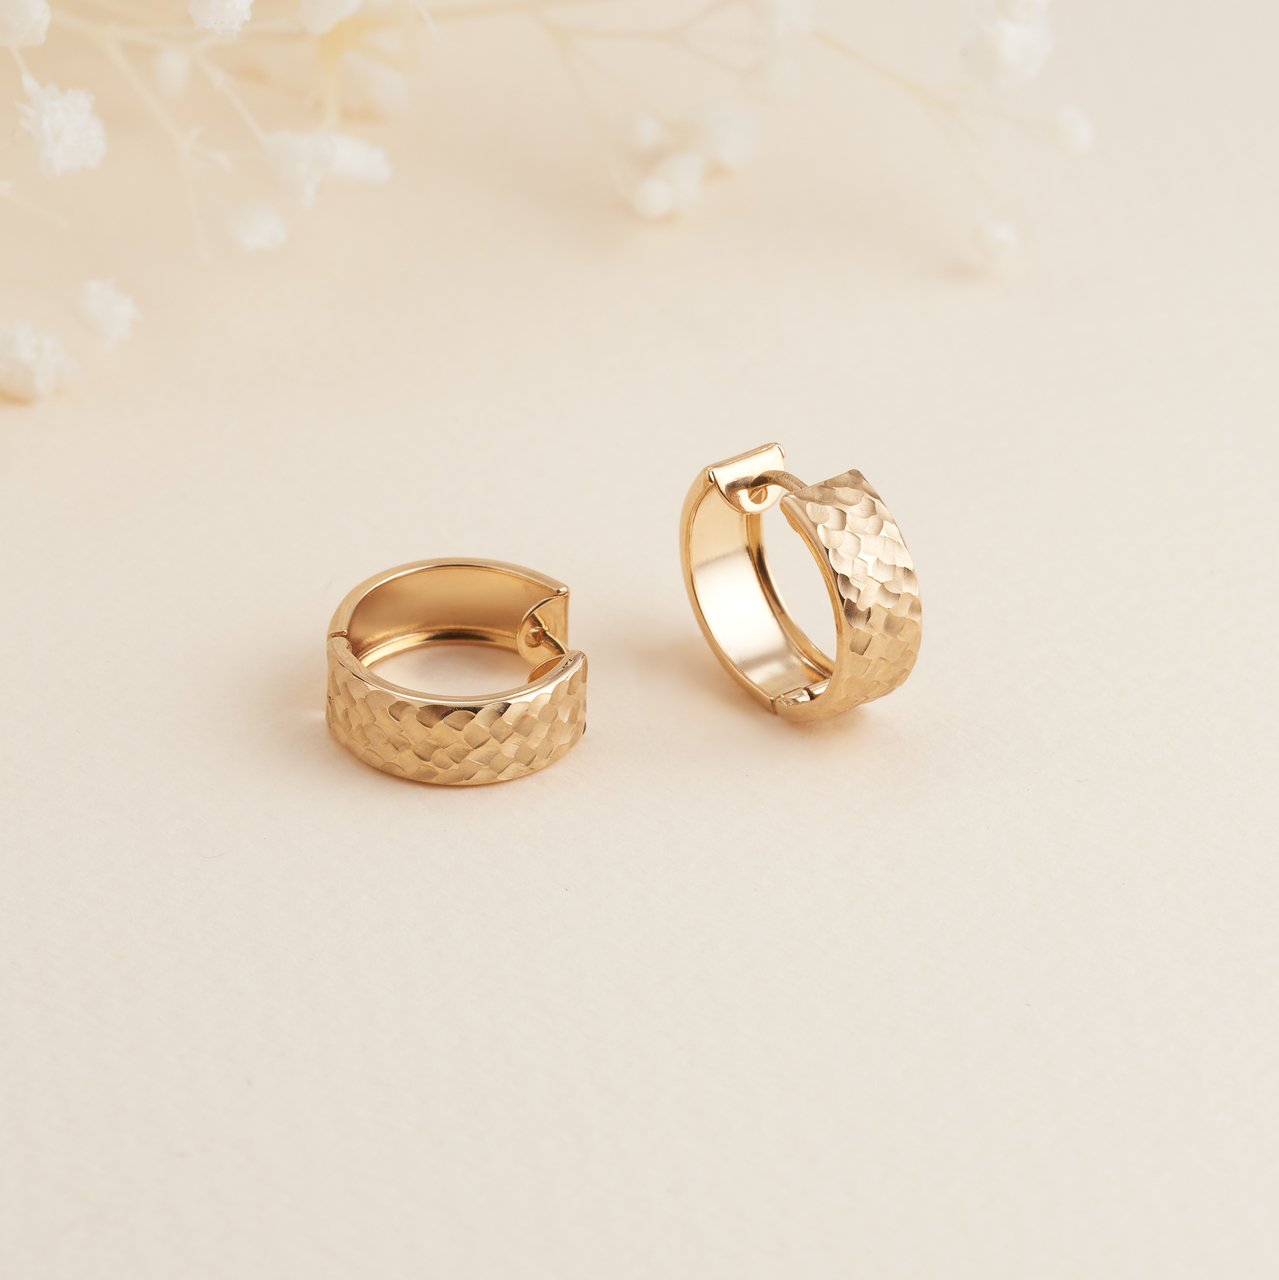 9K Yellow Gold Patterned Round Huggie Earrings